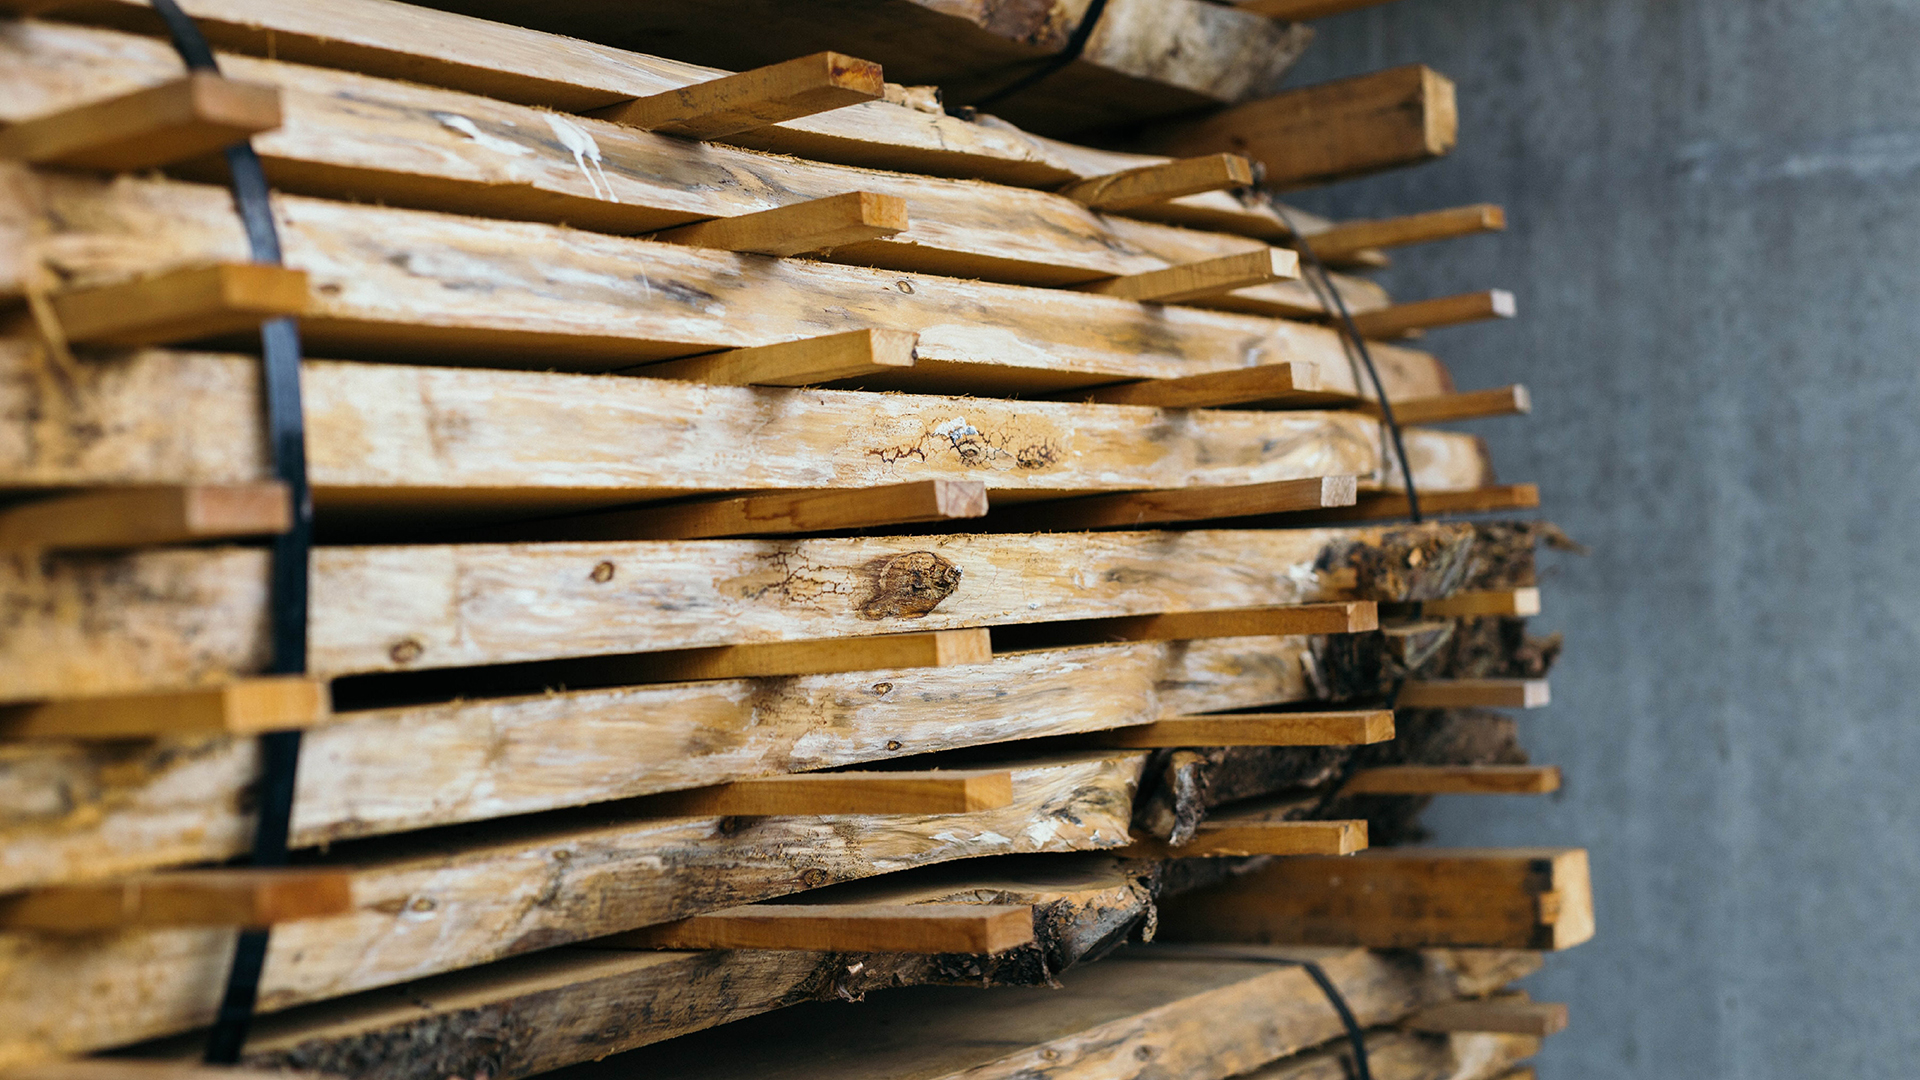 Sharpen Your Skills - 9 Steps to Sizing Rough Lumber